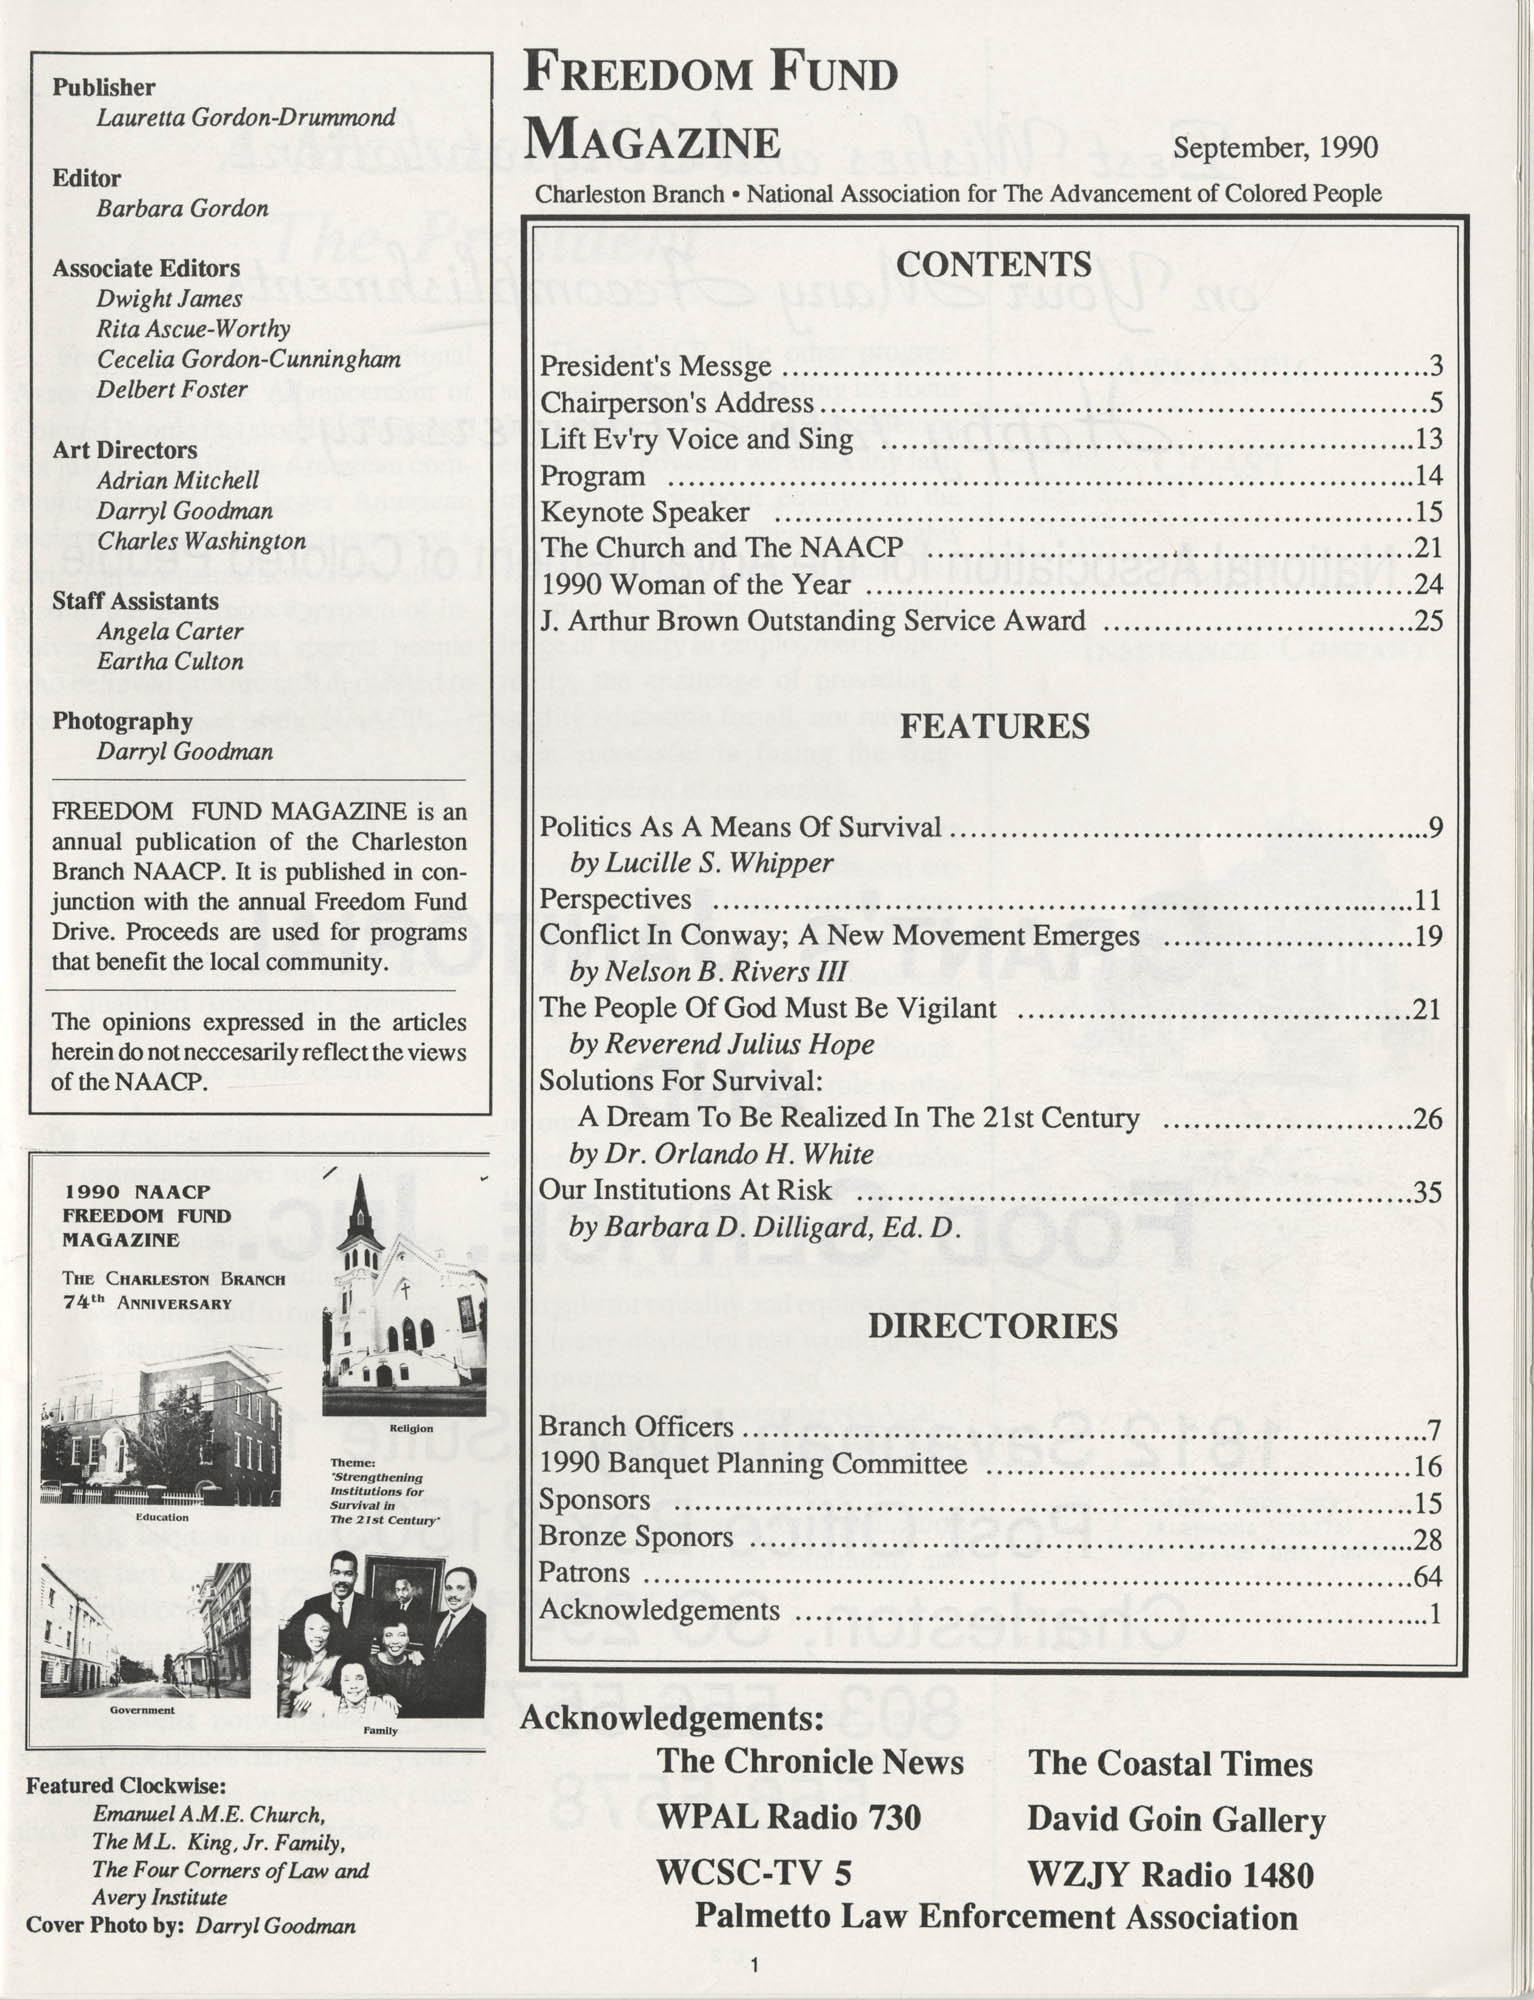 1990 NAACP Freedom Fund Magazine, Charleston Branch of the NAACP, 74th Anniversary, Page 1